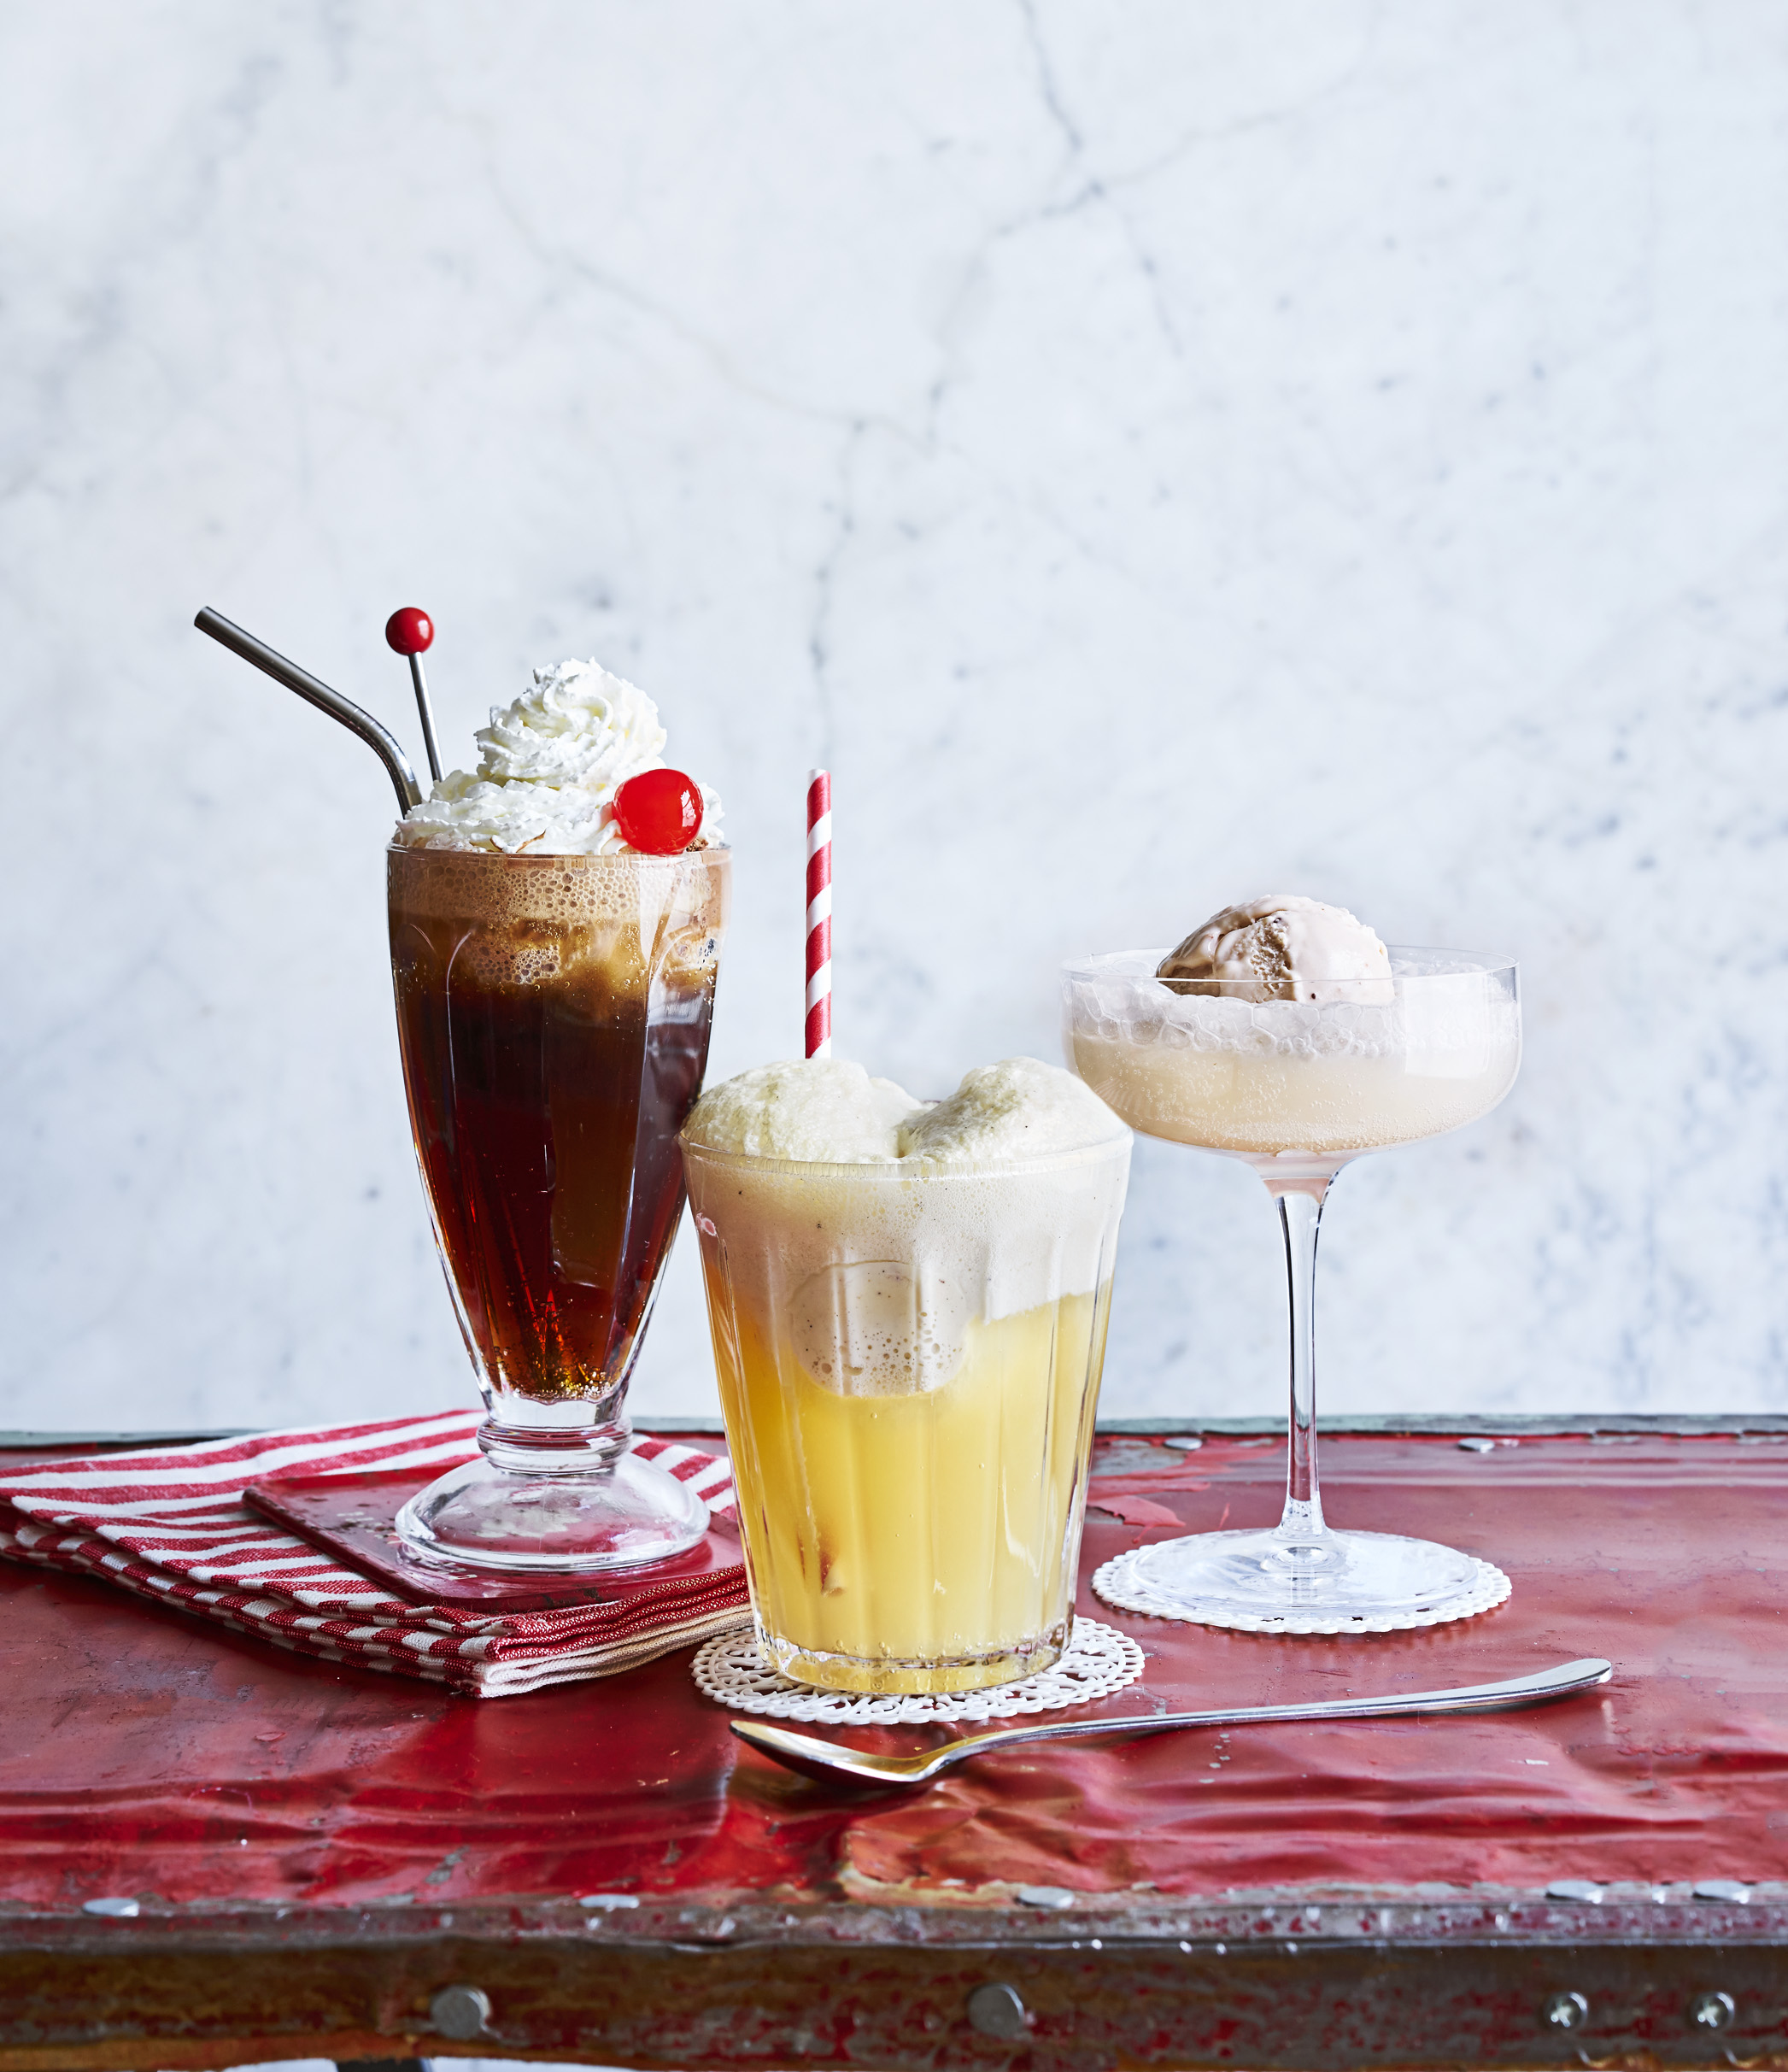 Boozy Ice Cream Float Recipes Ice Cream Toppings